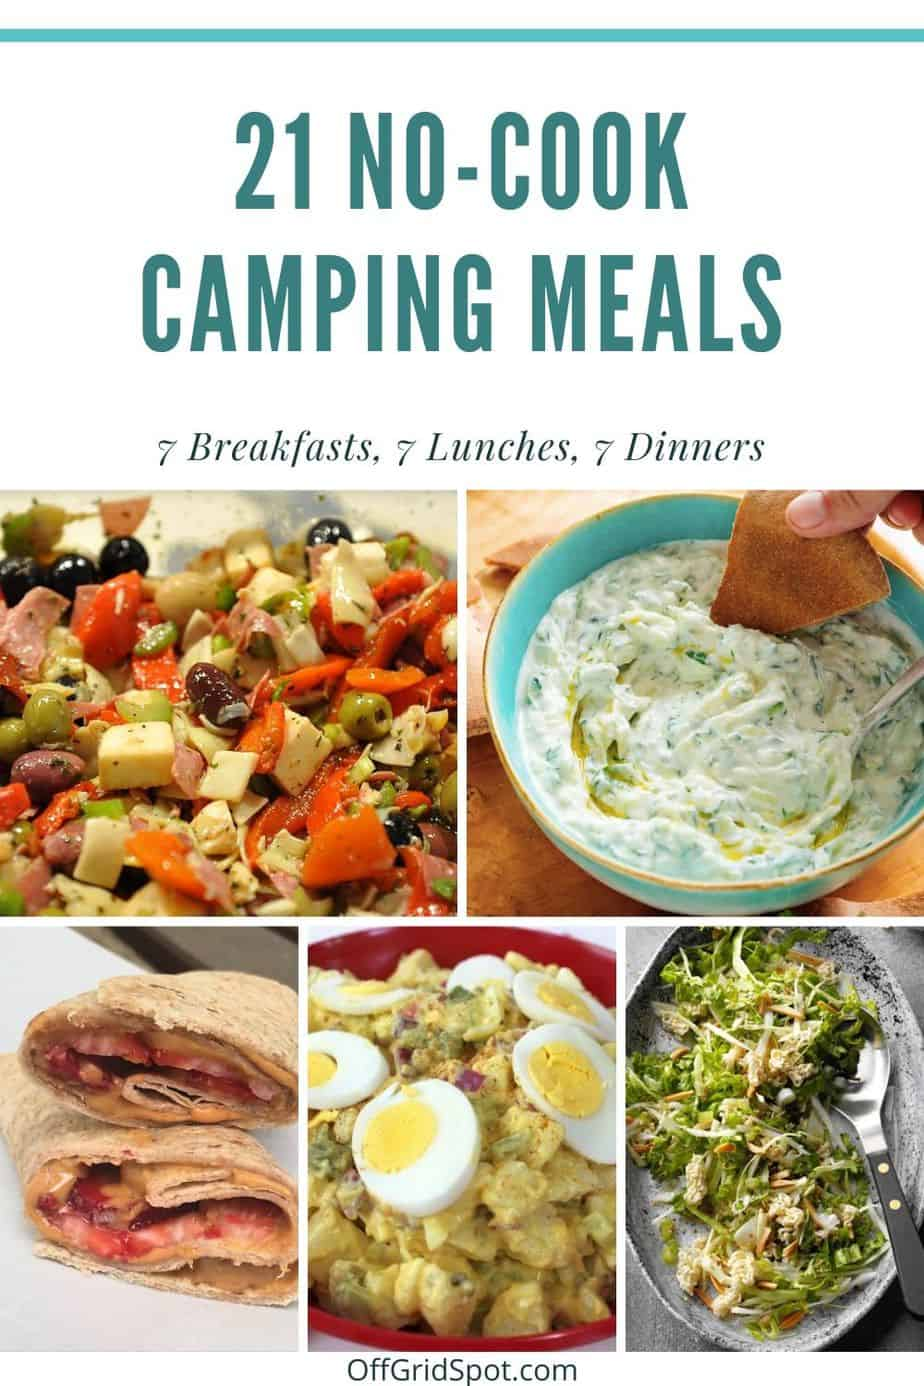 21 No-cook Camping Meals